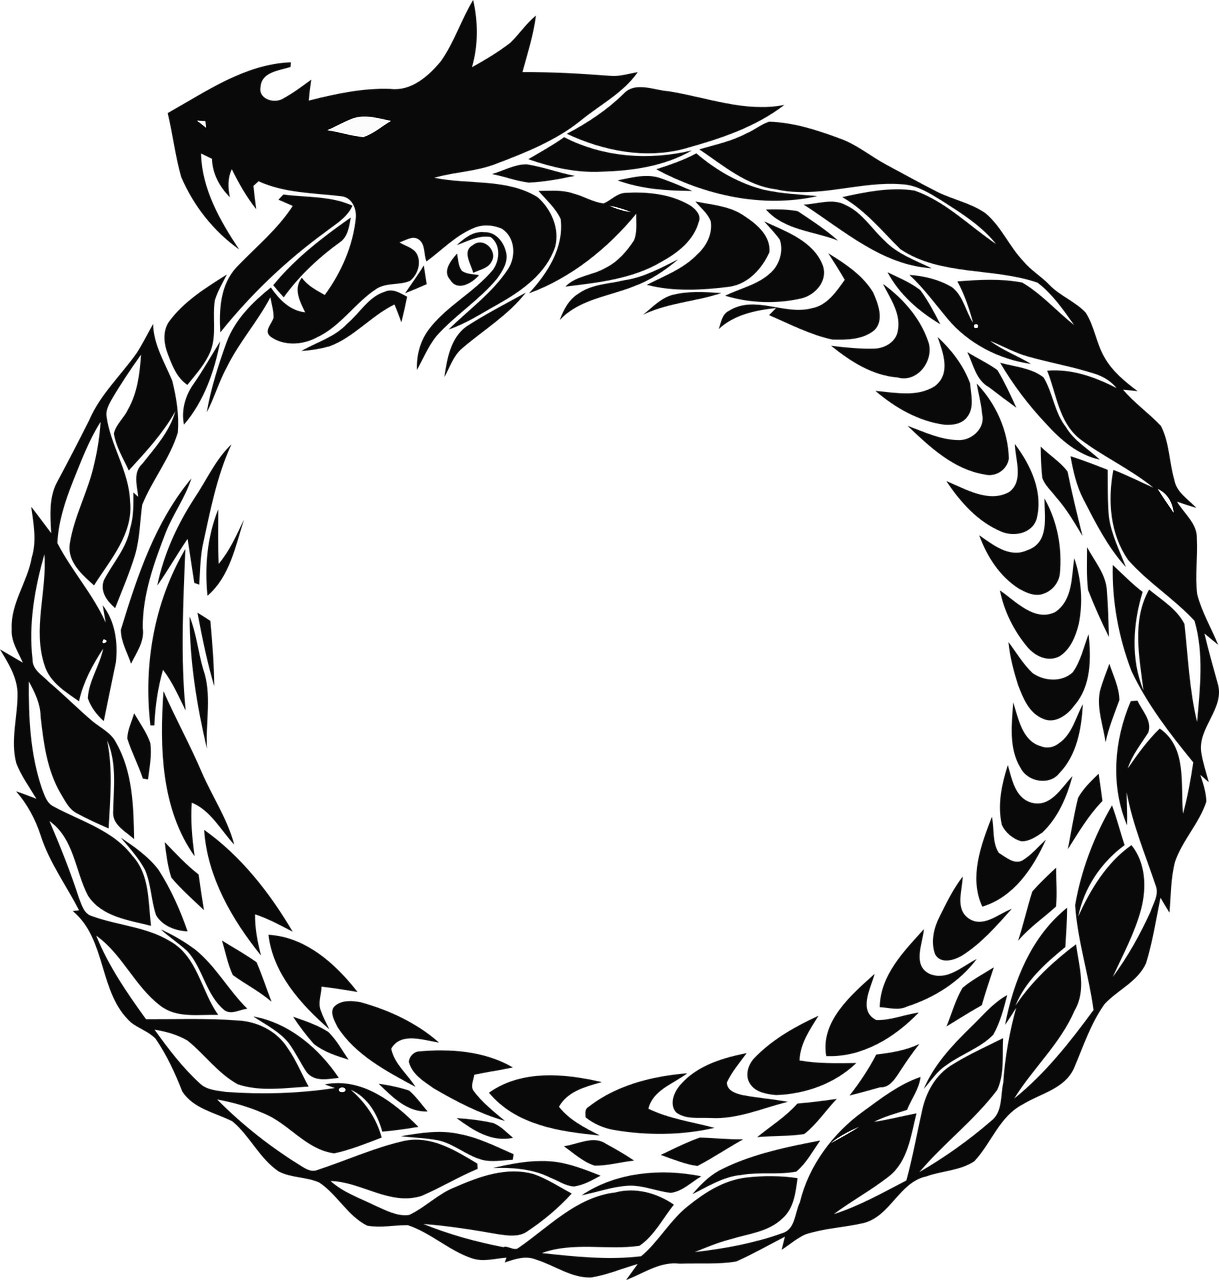 Ouroboros drawing black and white. On existing tracey ferraro